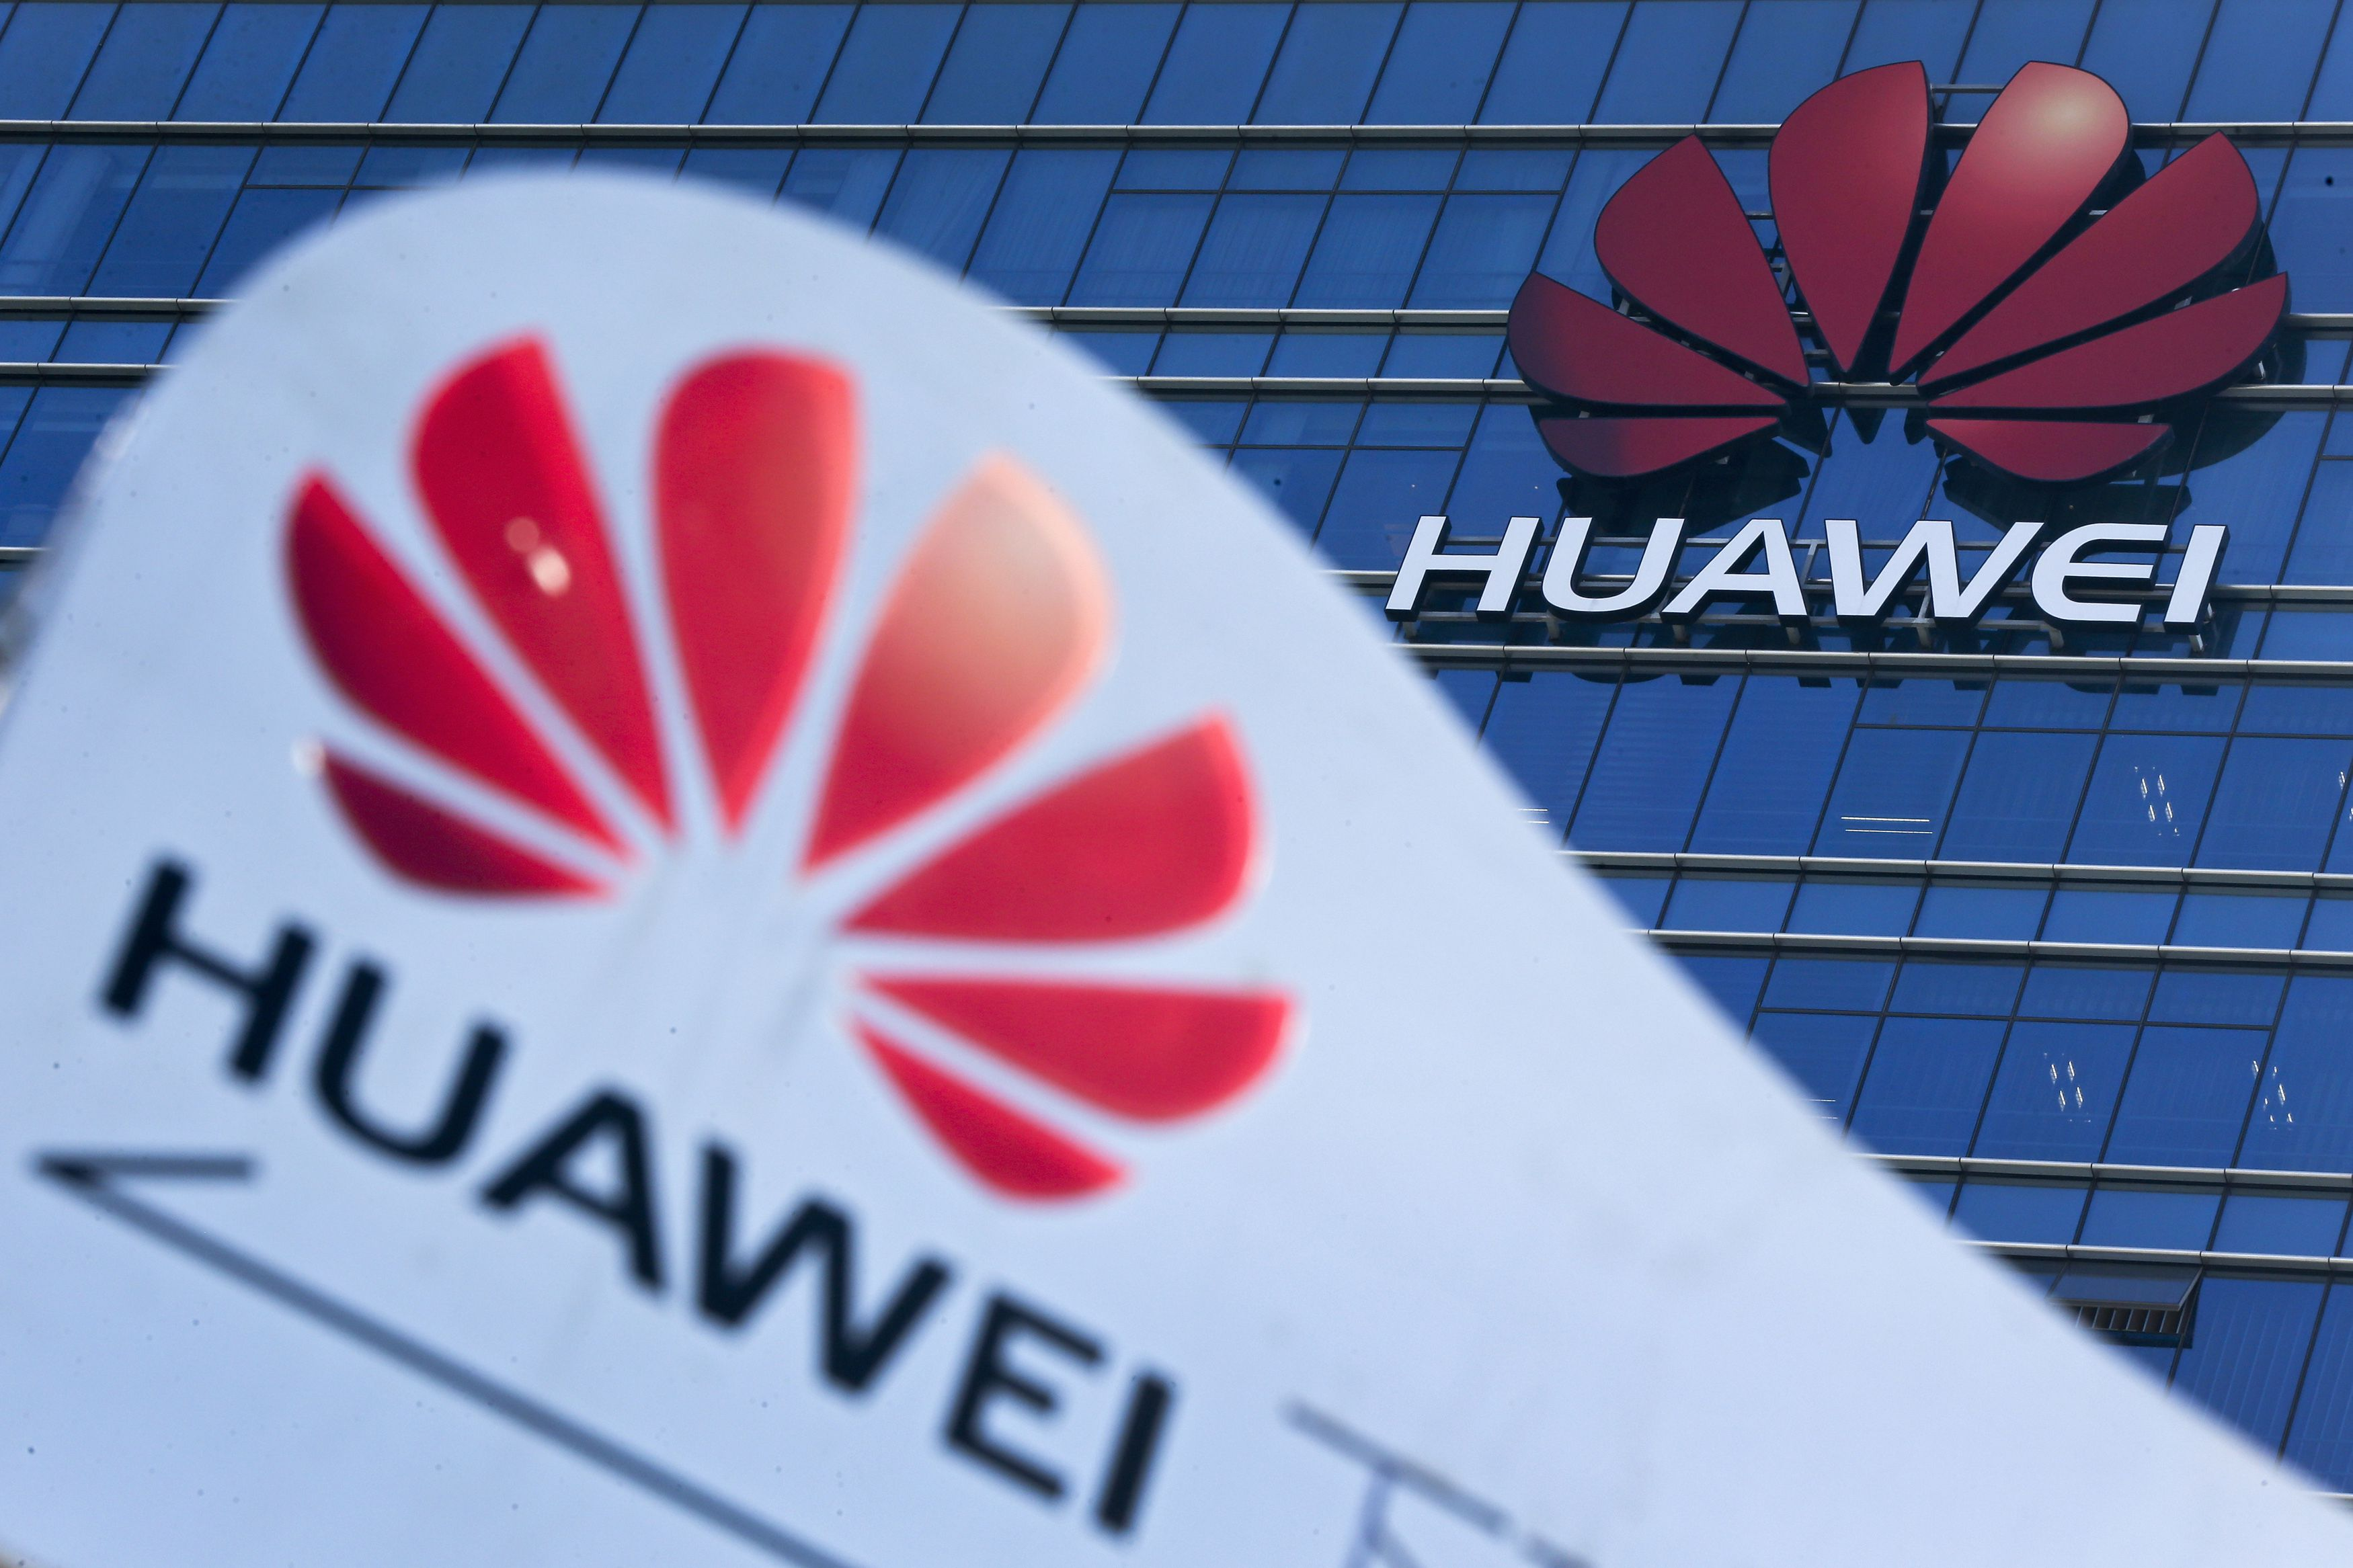 Huawei and technology suppliers reportedly making plans to face U.S. trade blacklist